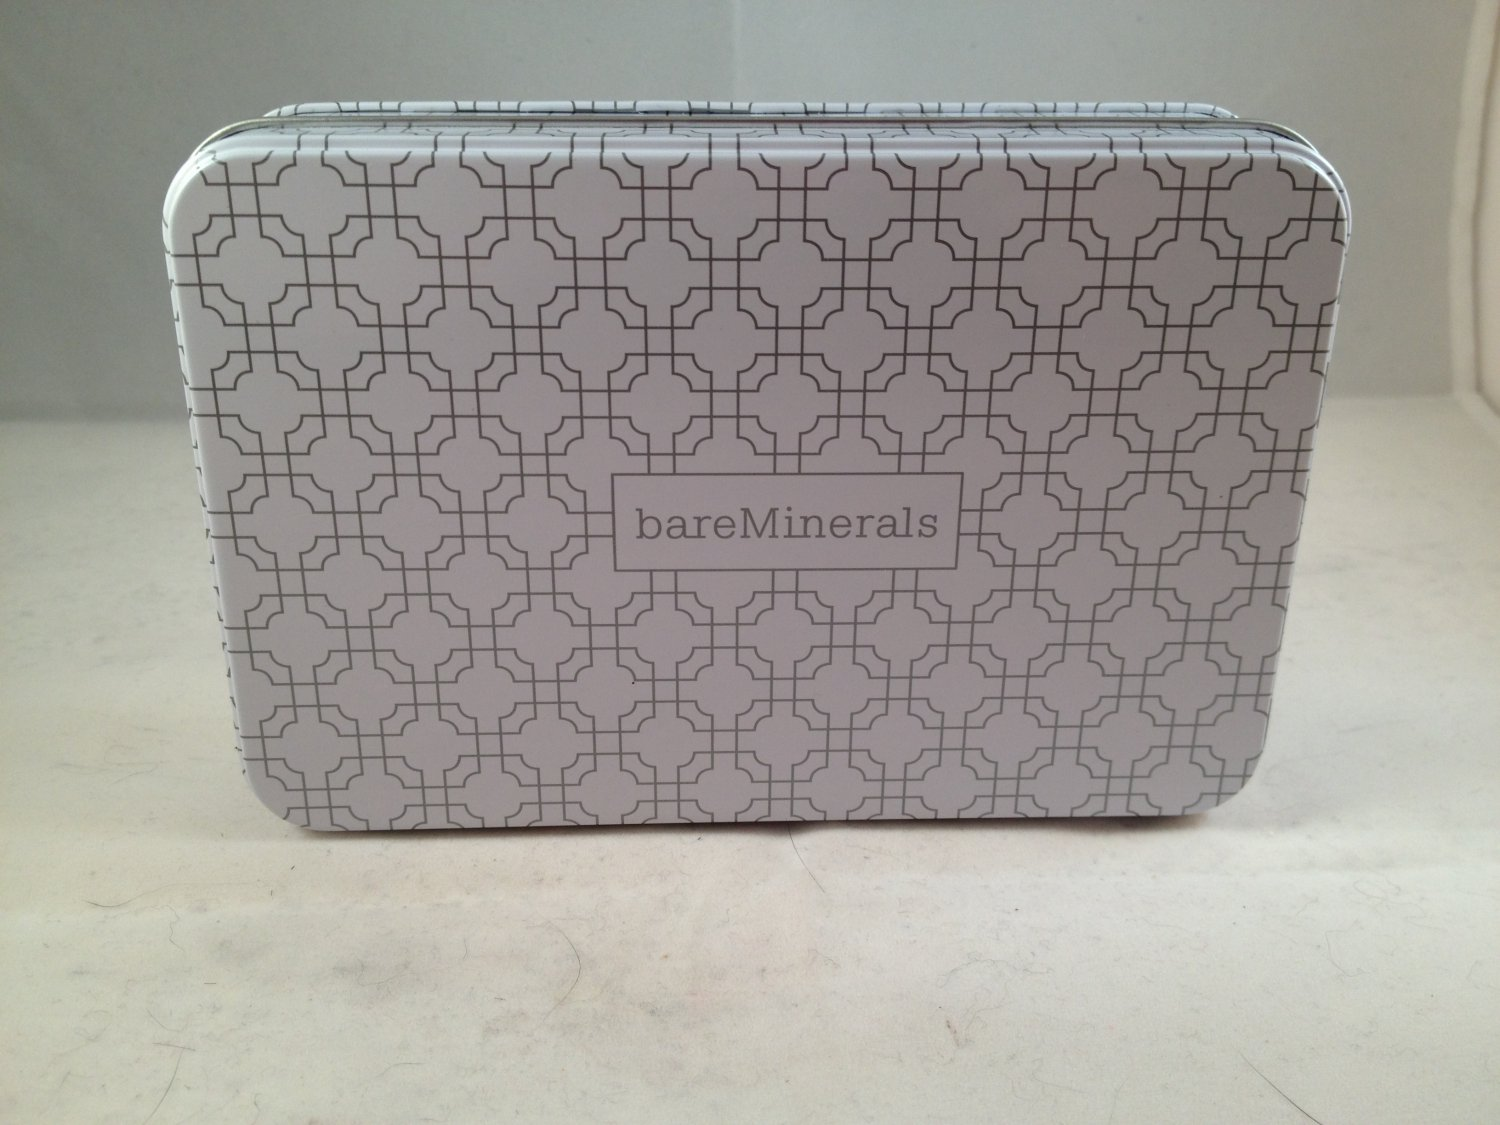 Bare Escentuals bareMinerals Limited Edition Collector's Tin Gift Box storage container